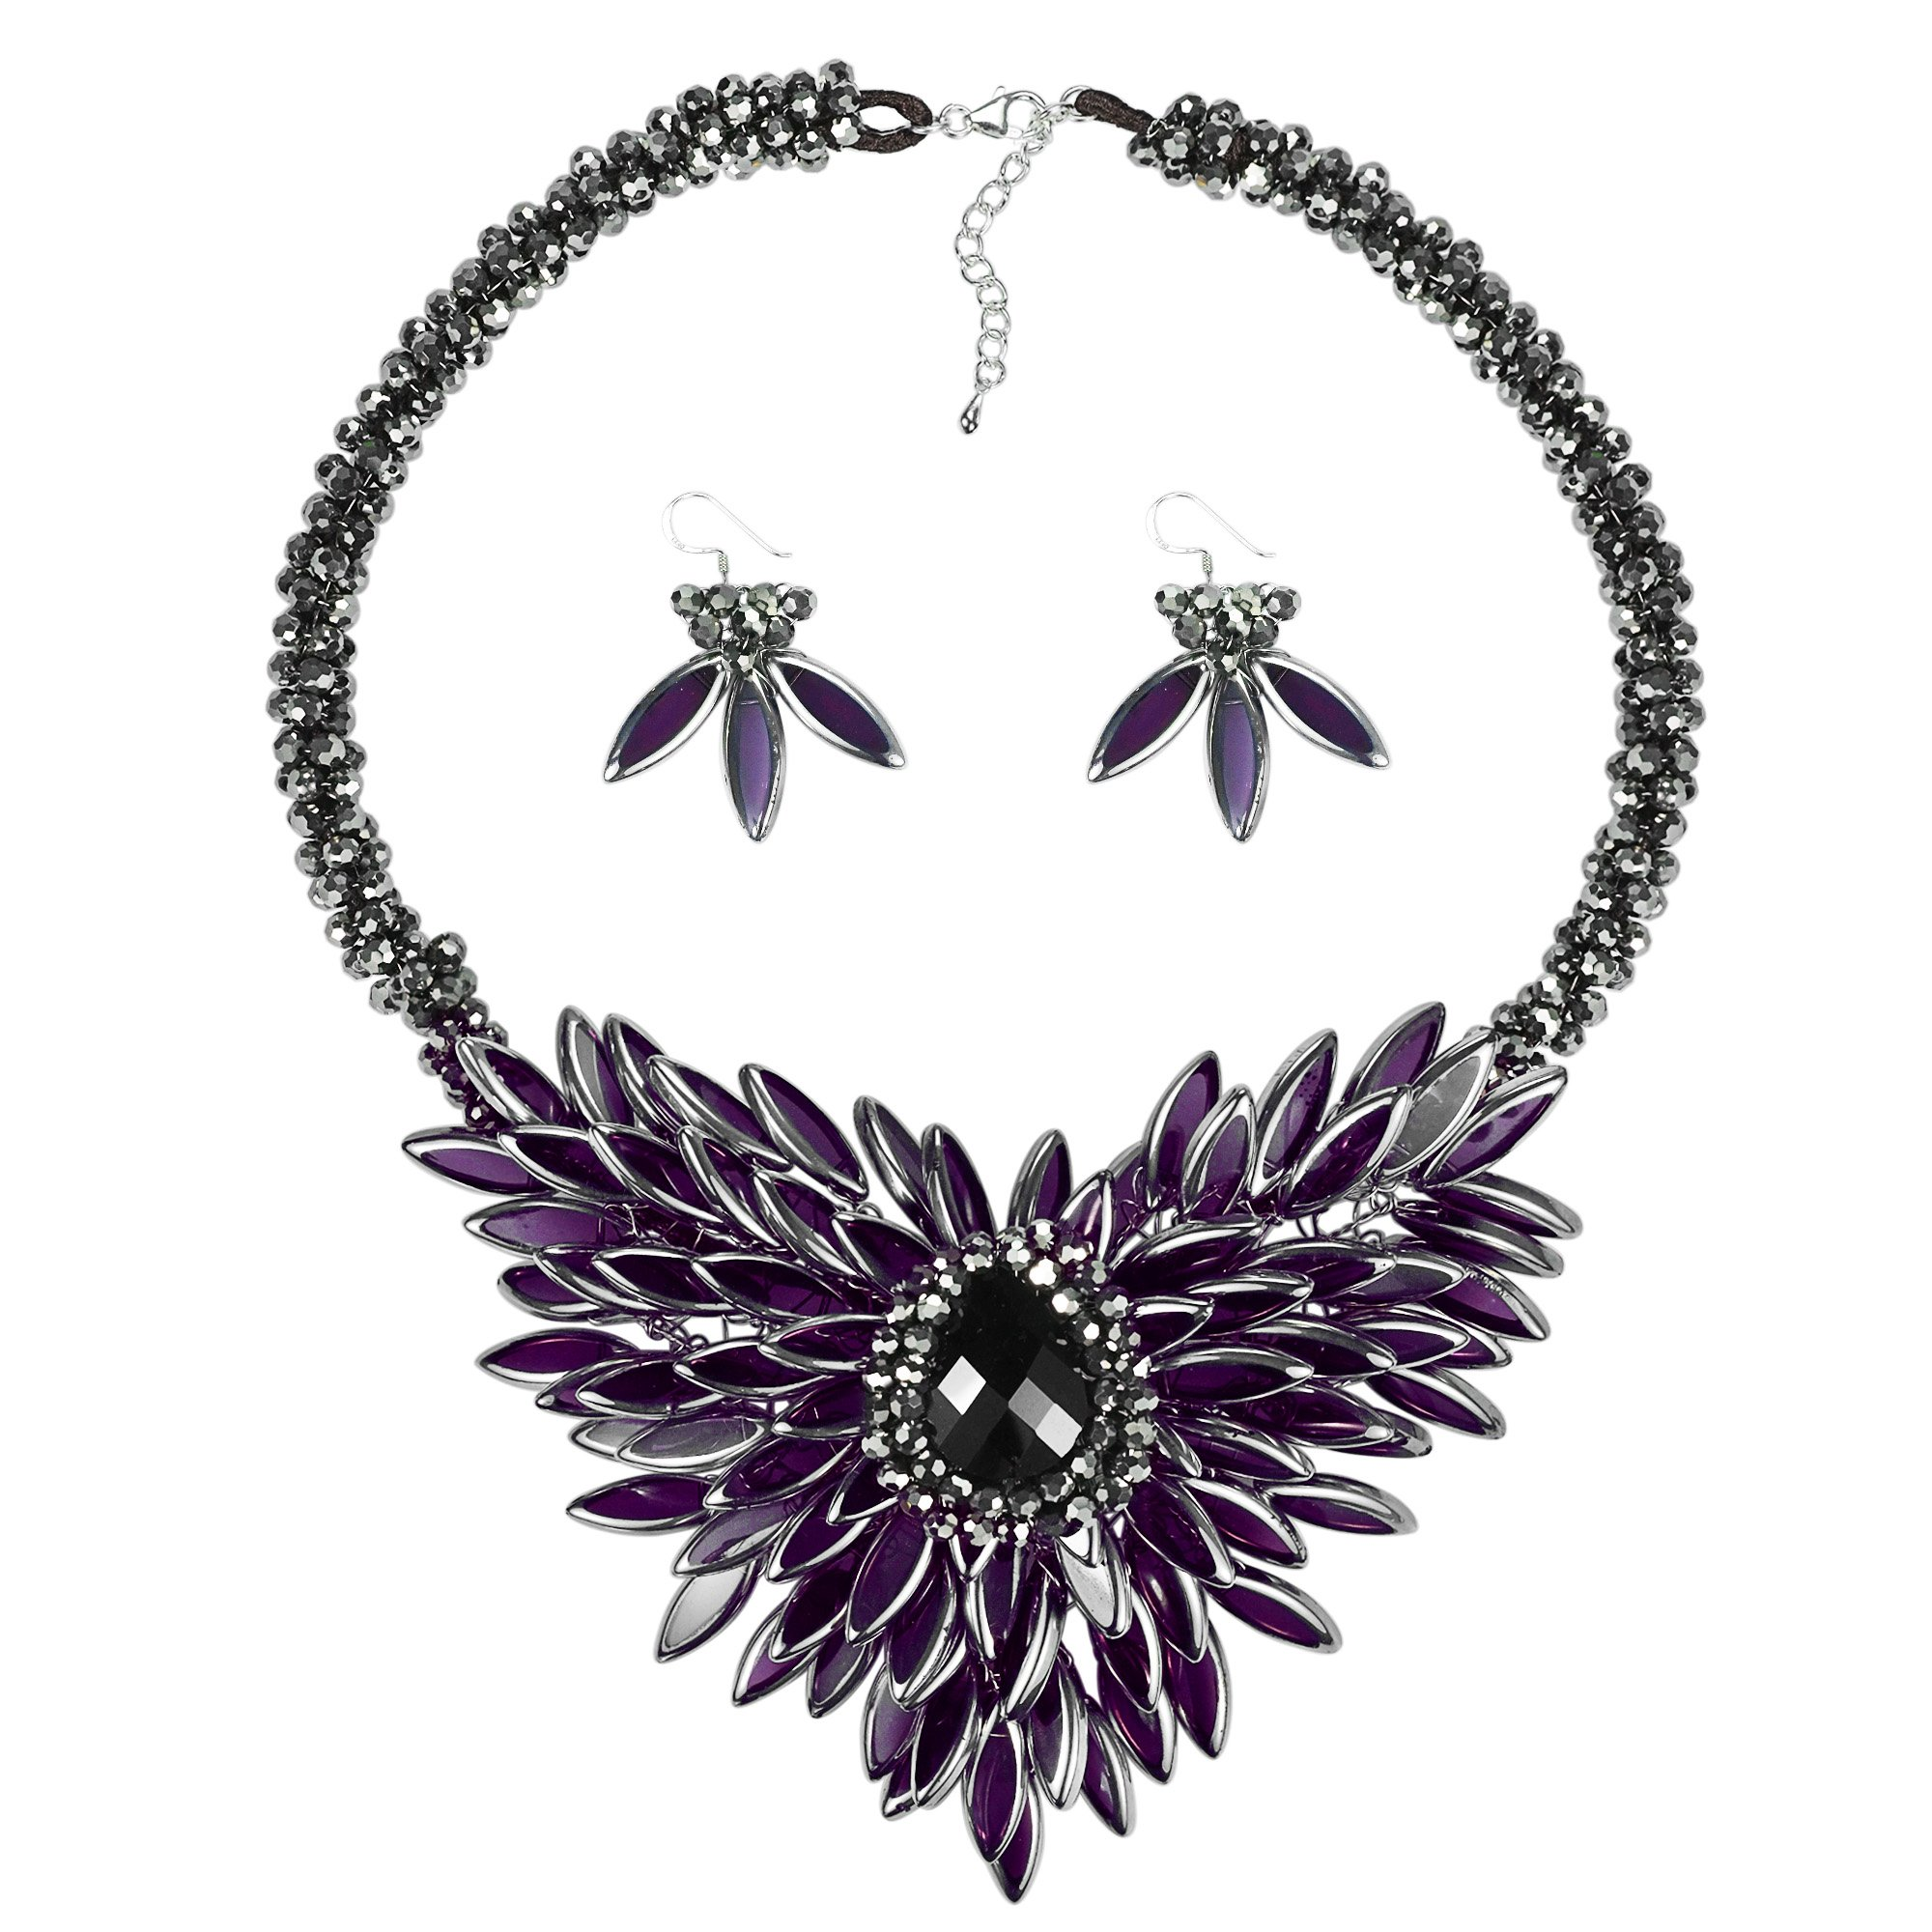 Baroque Hidden Floral Purple Glass Necklace and Earring Jewelry Set by AeraVida